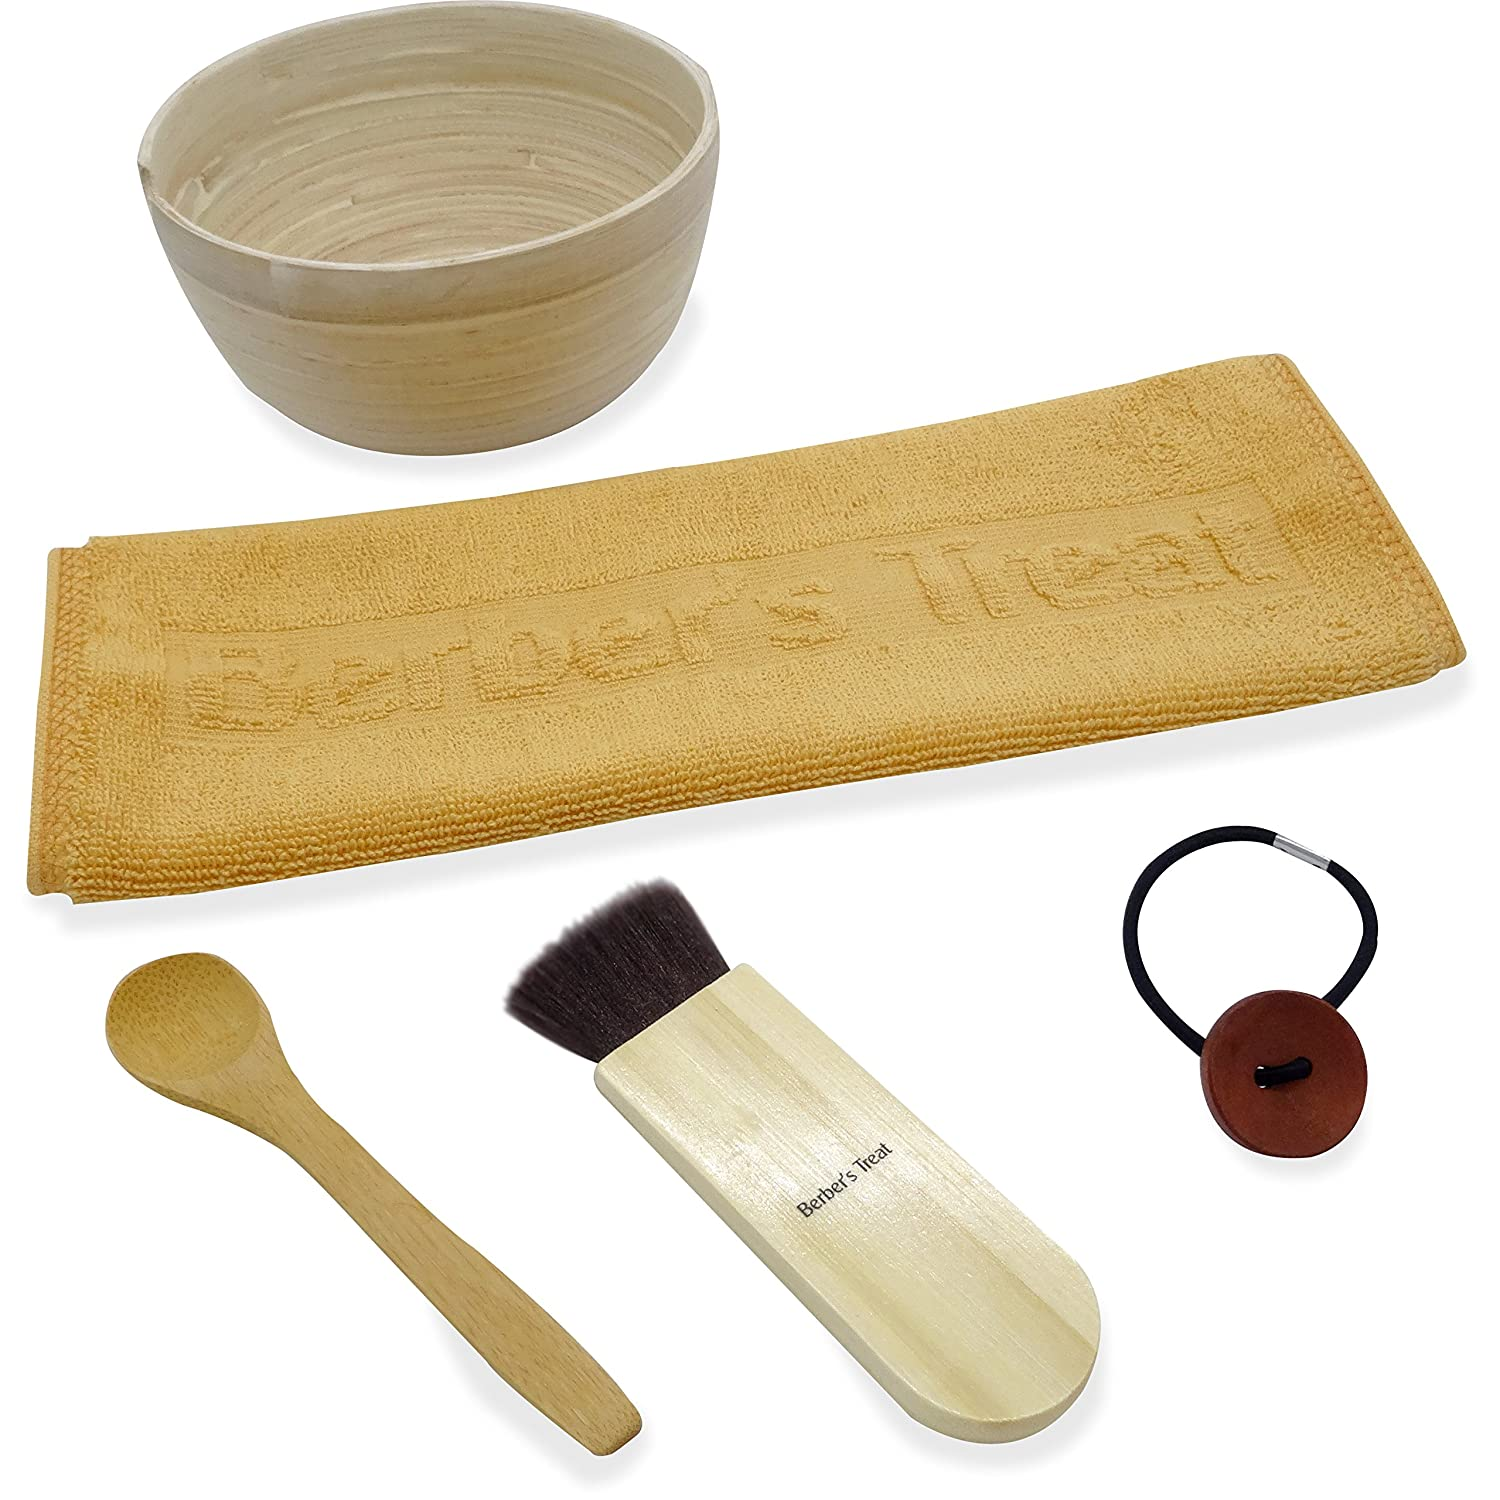 DIY Clay Face Mask Set - Bowl For Mixing Bentonite, Rhassoul or Other Clays and Healing Masks at Home Cloveree